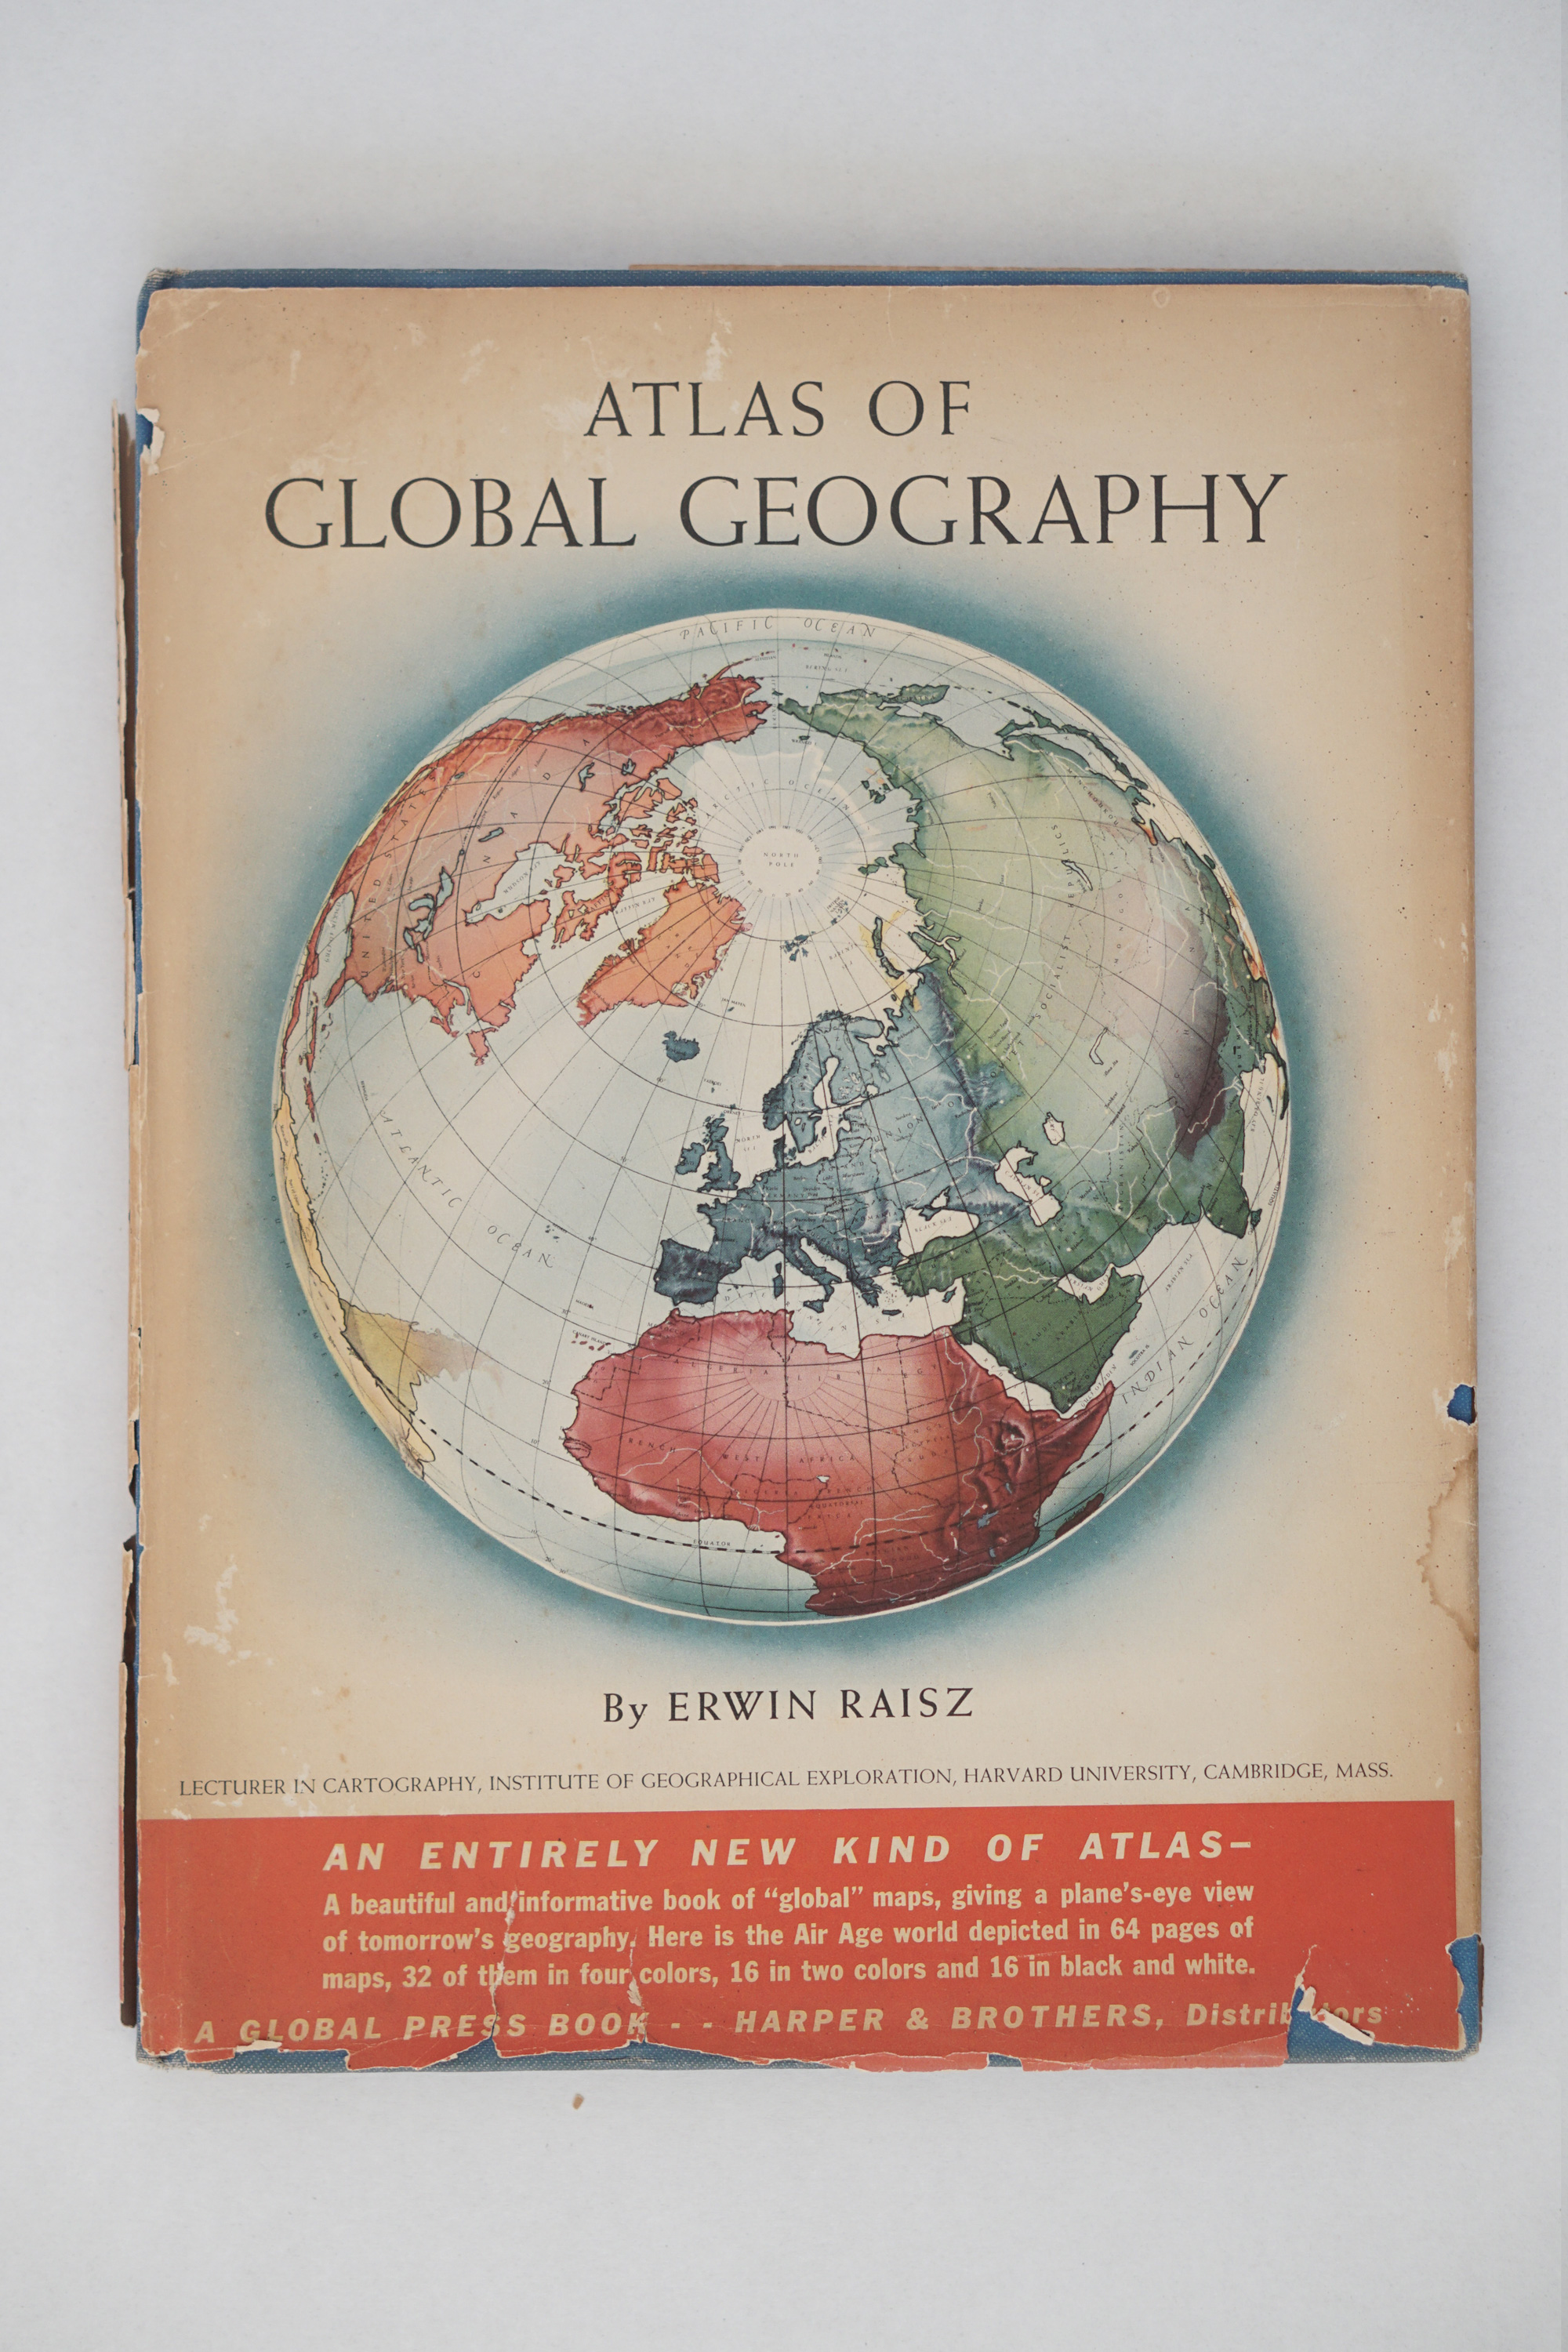 Cover of Atlas of Global Geography by Erwin Raisz